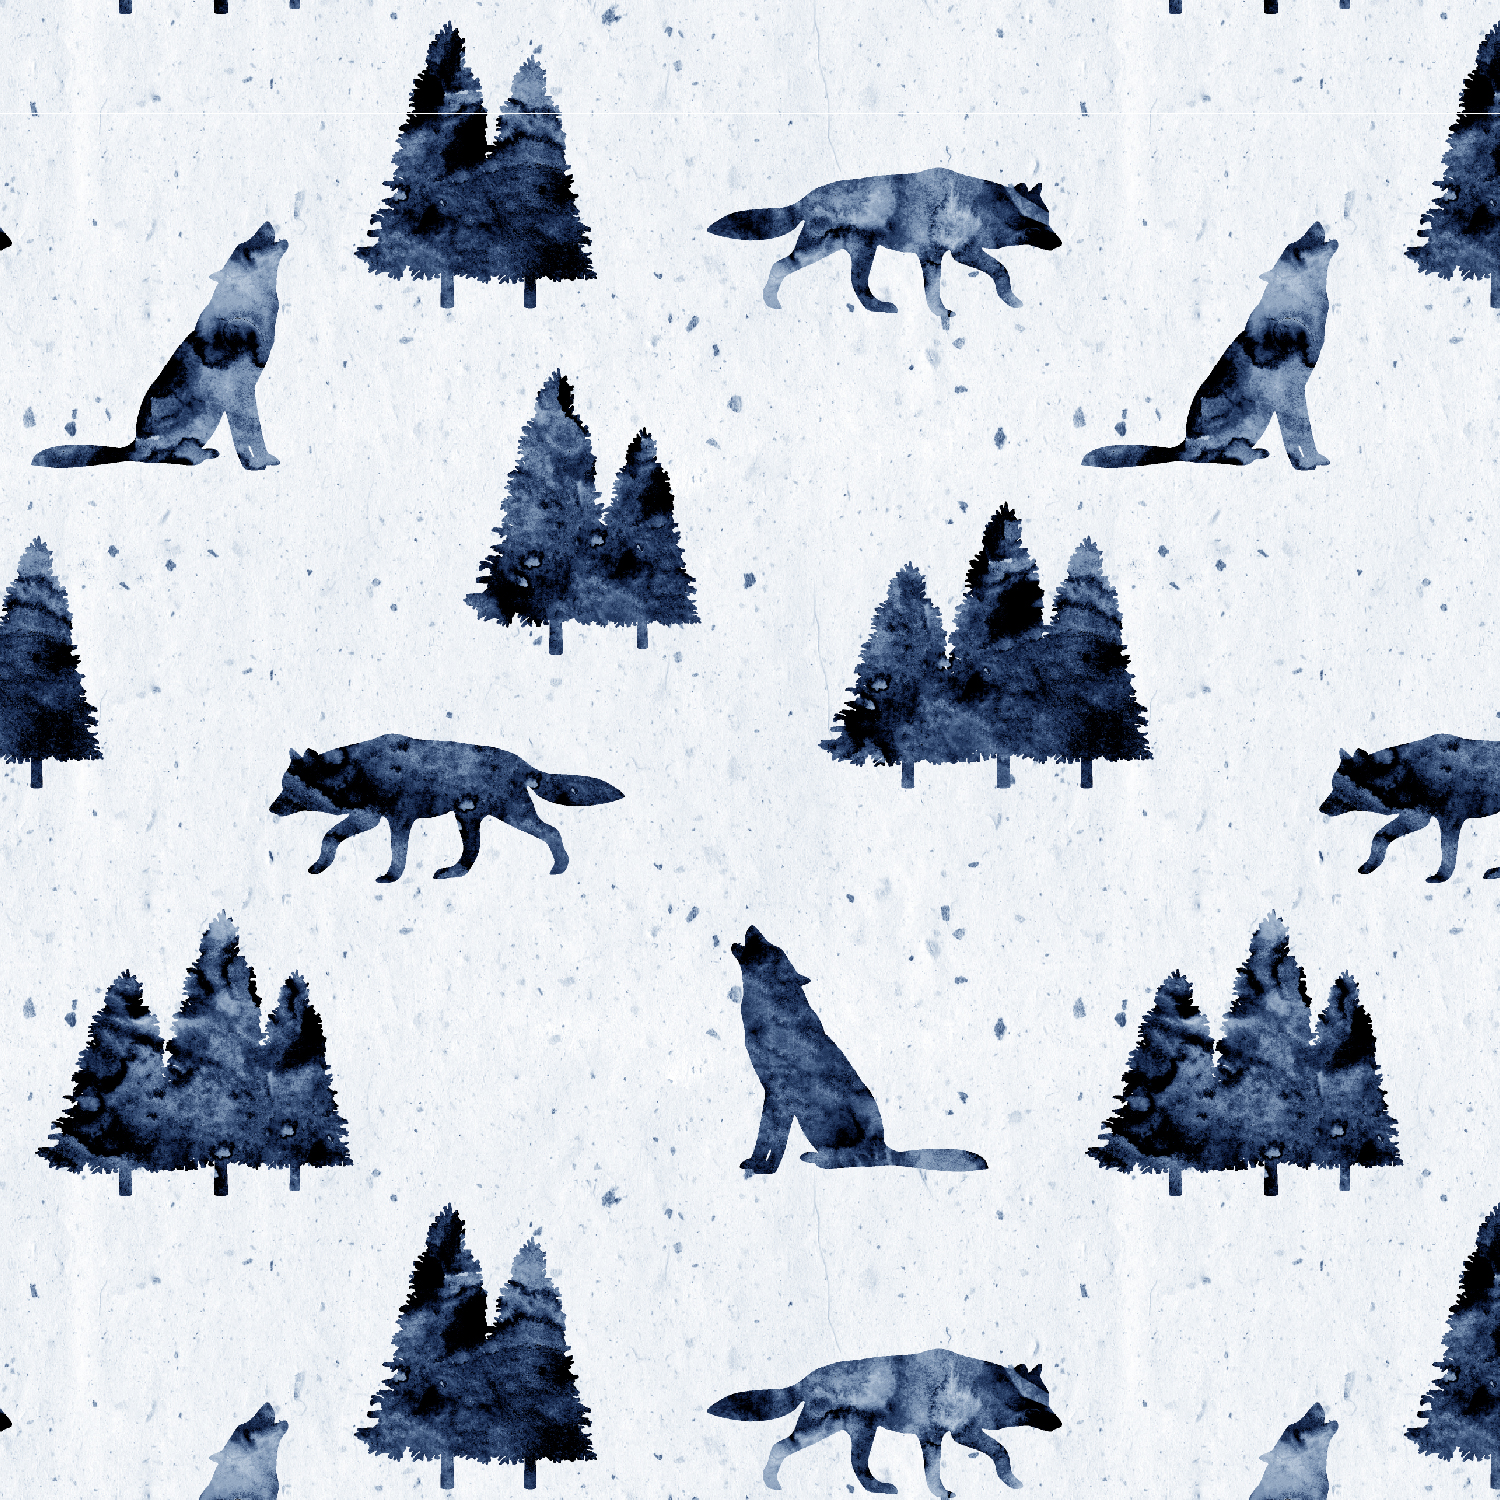 patternbank patterns-03.jpg